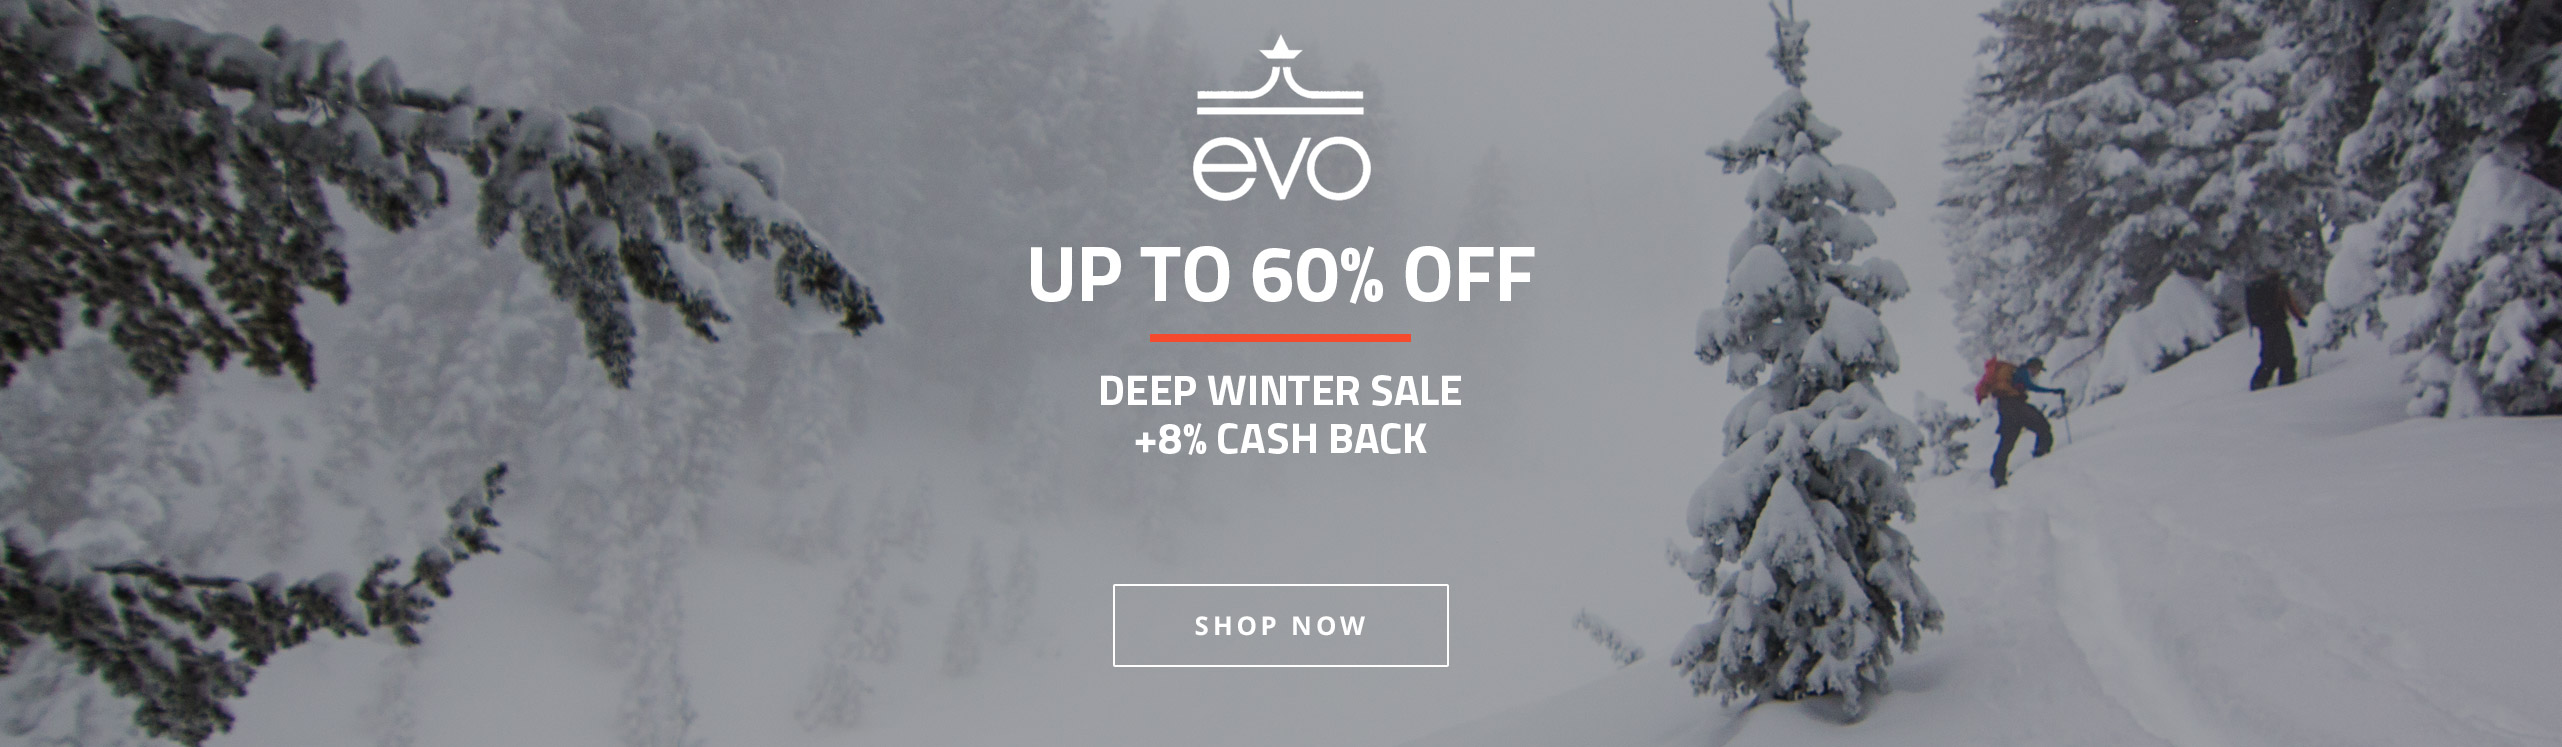 Evo Outlet Sale